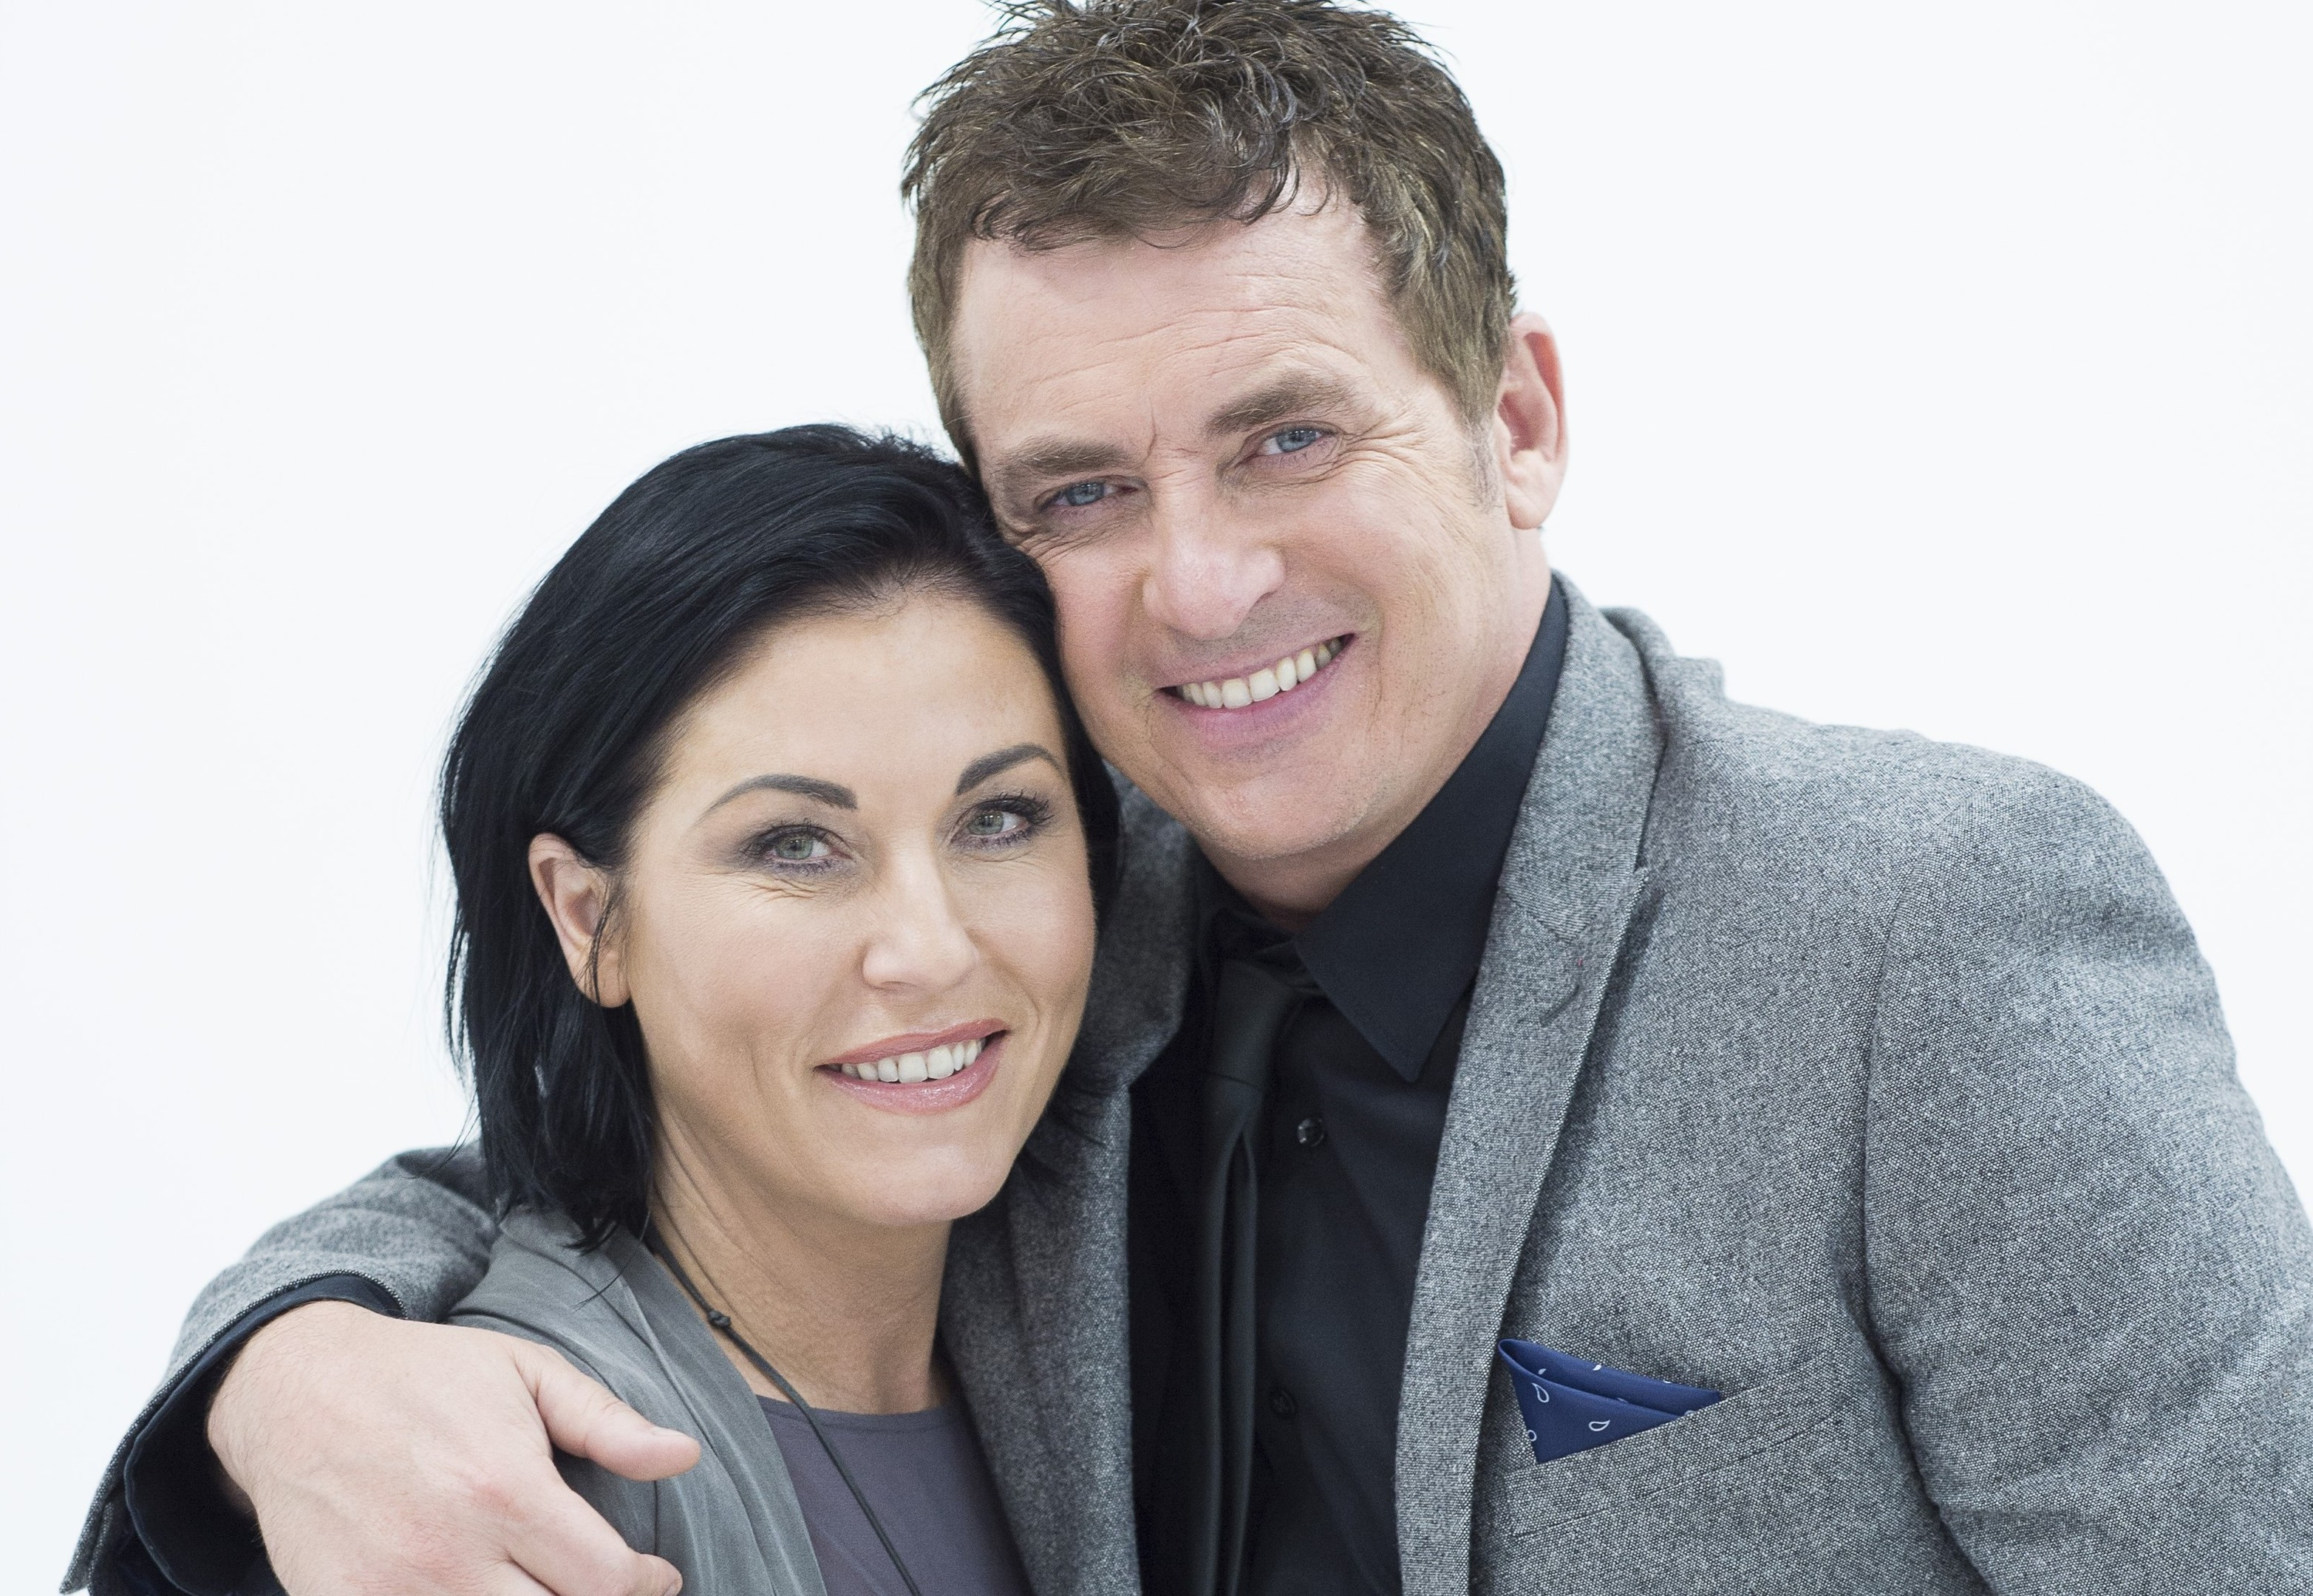 Shane Richie and Jessie Wallace perform together in The Perfect Murder (Honeybunn Photography)